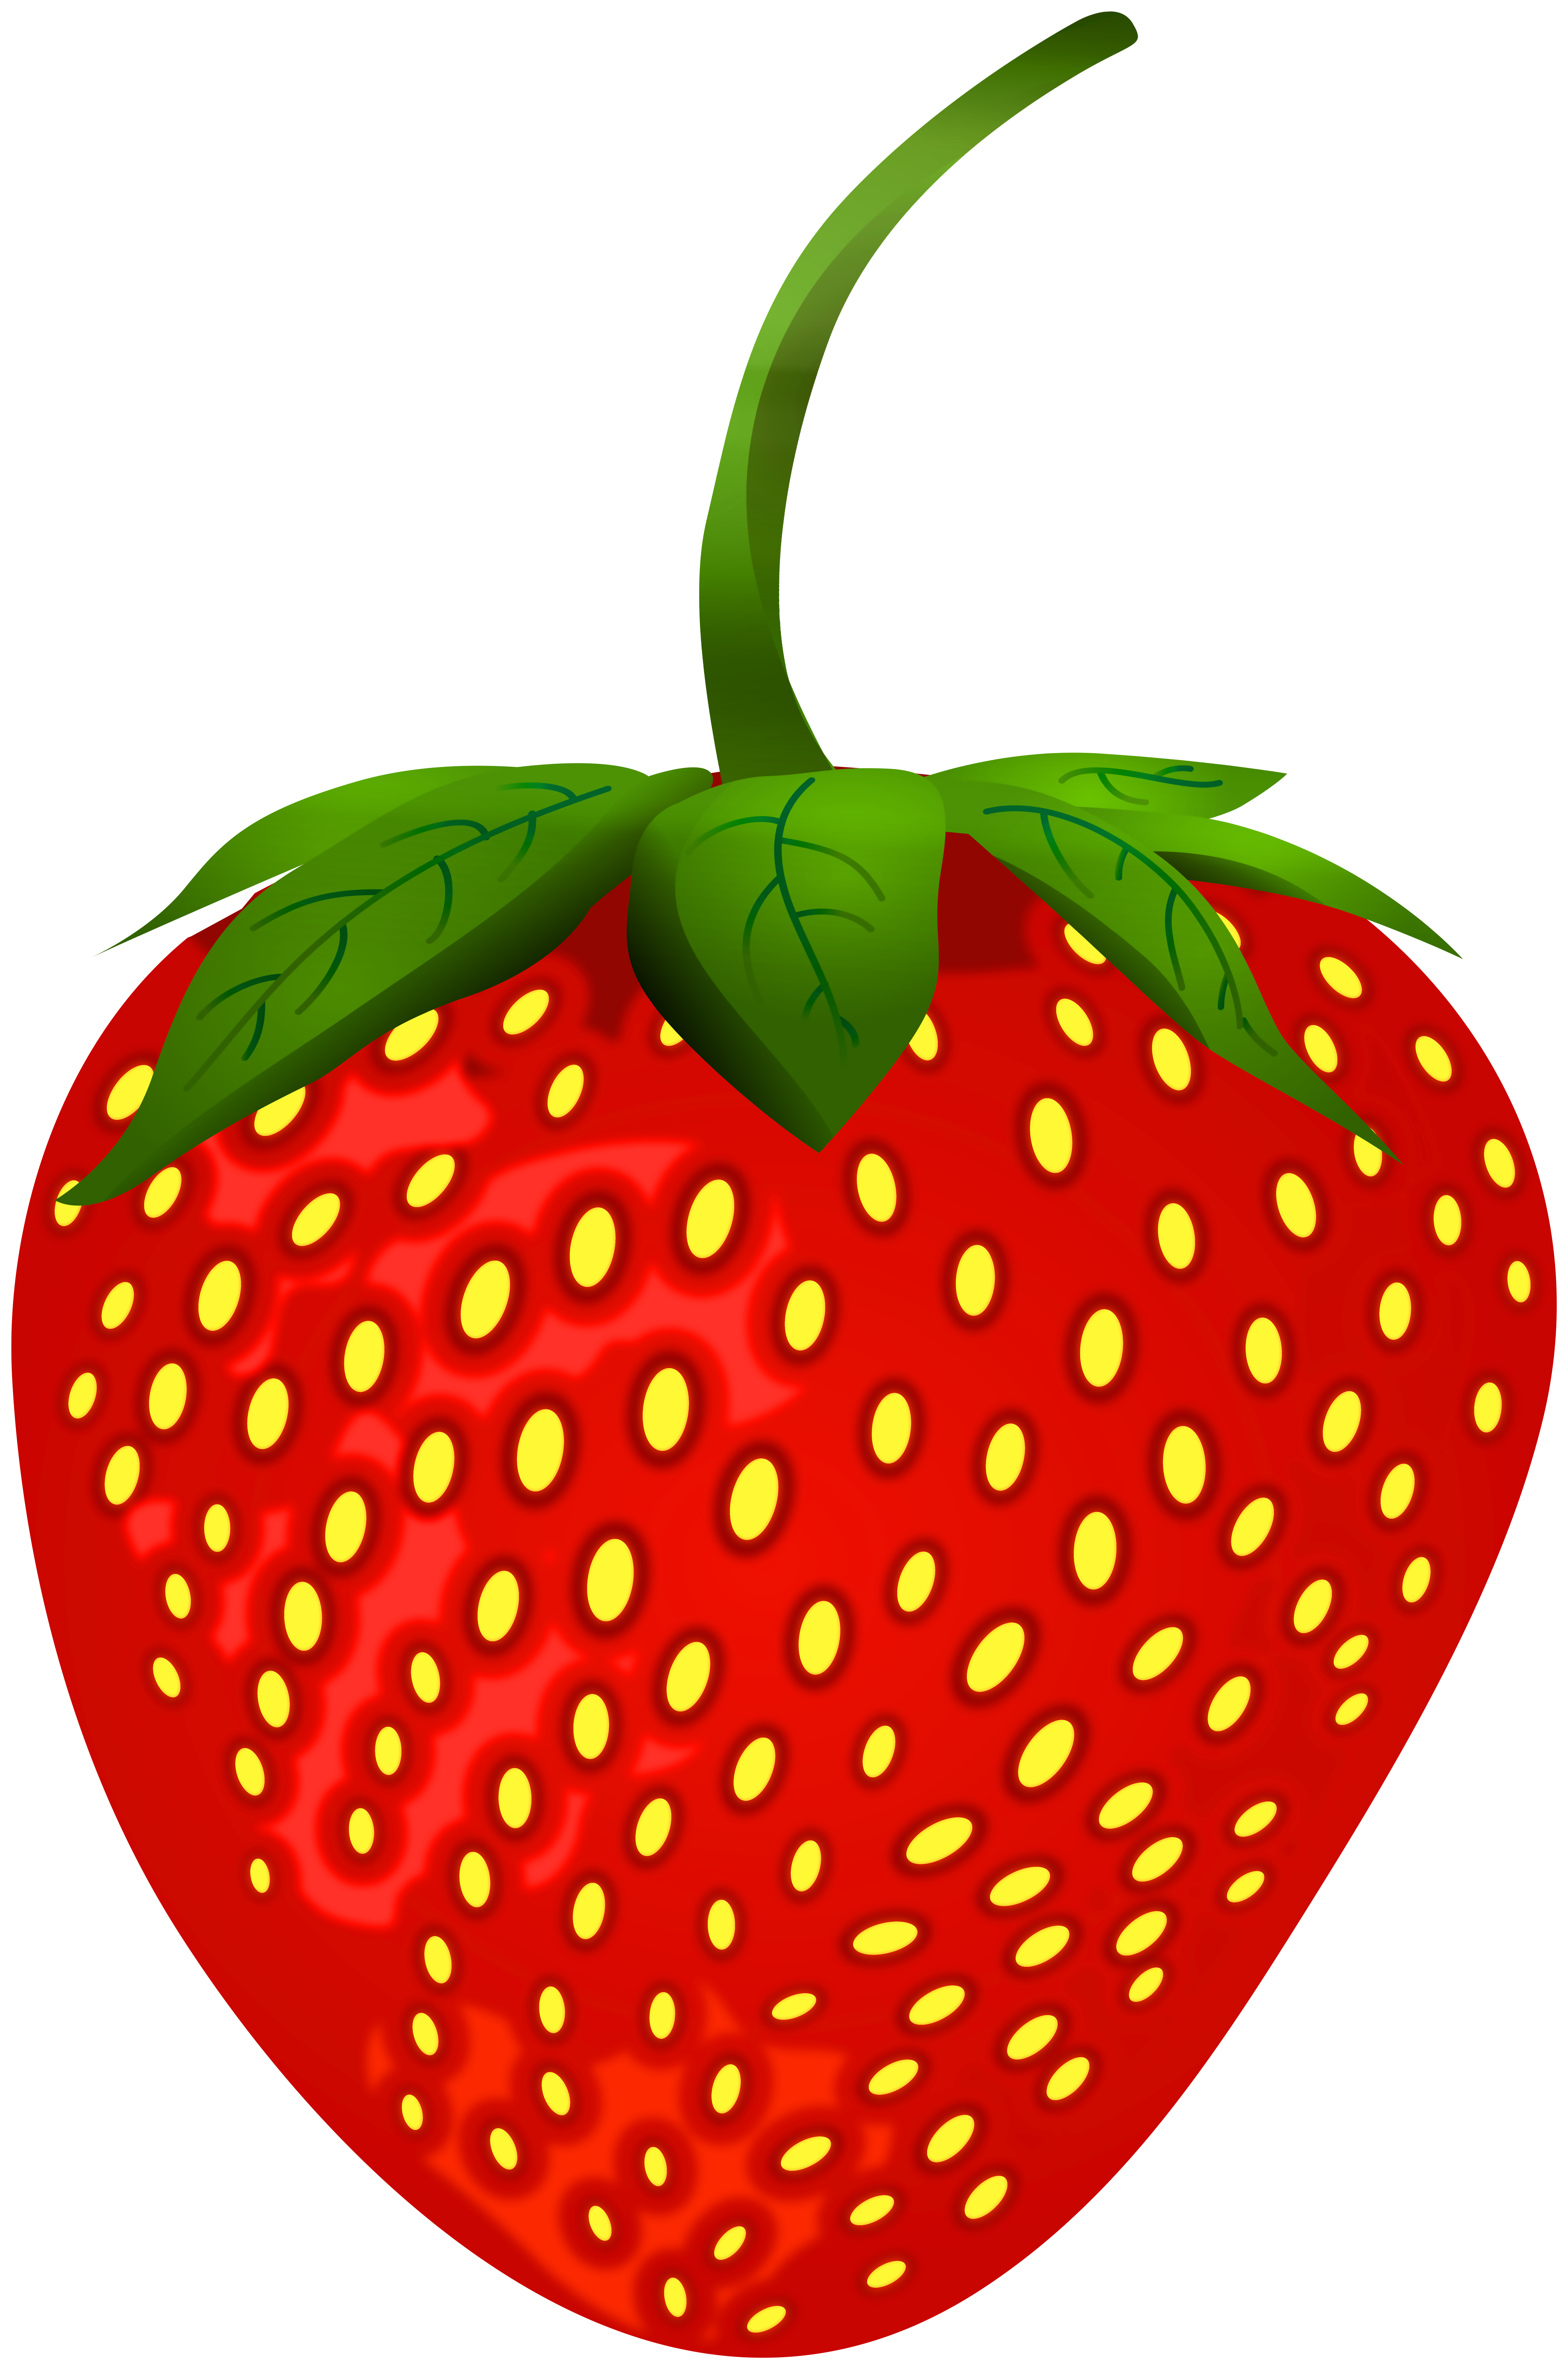 Strawberry png clip art. Strawberries clipart round fruit